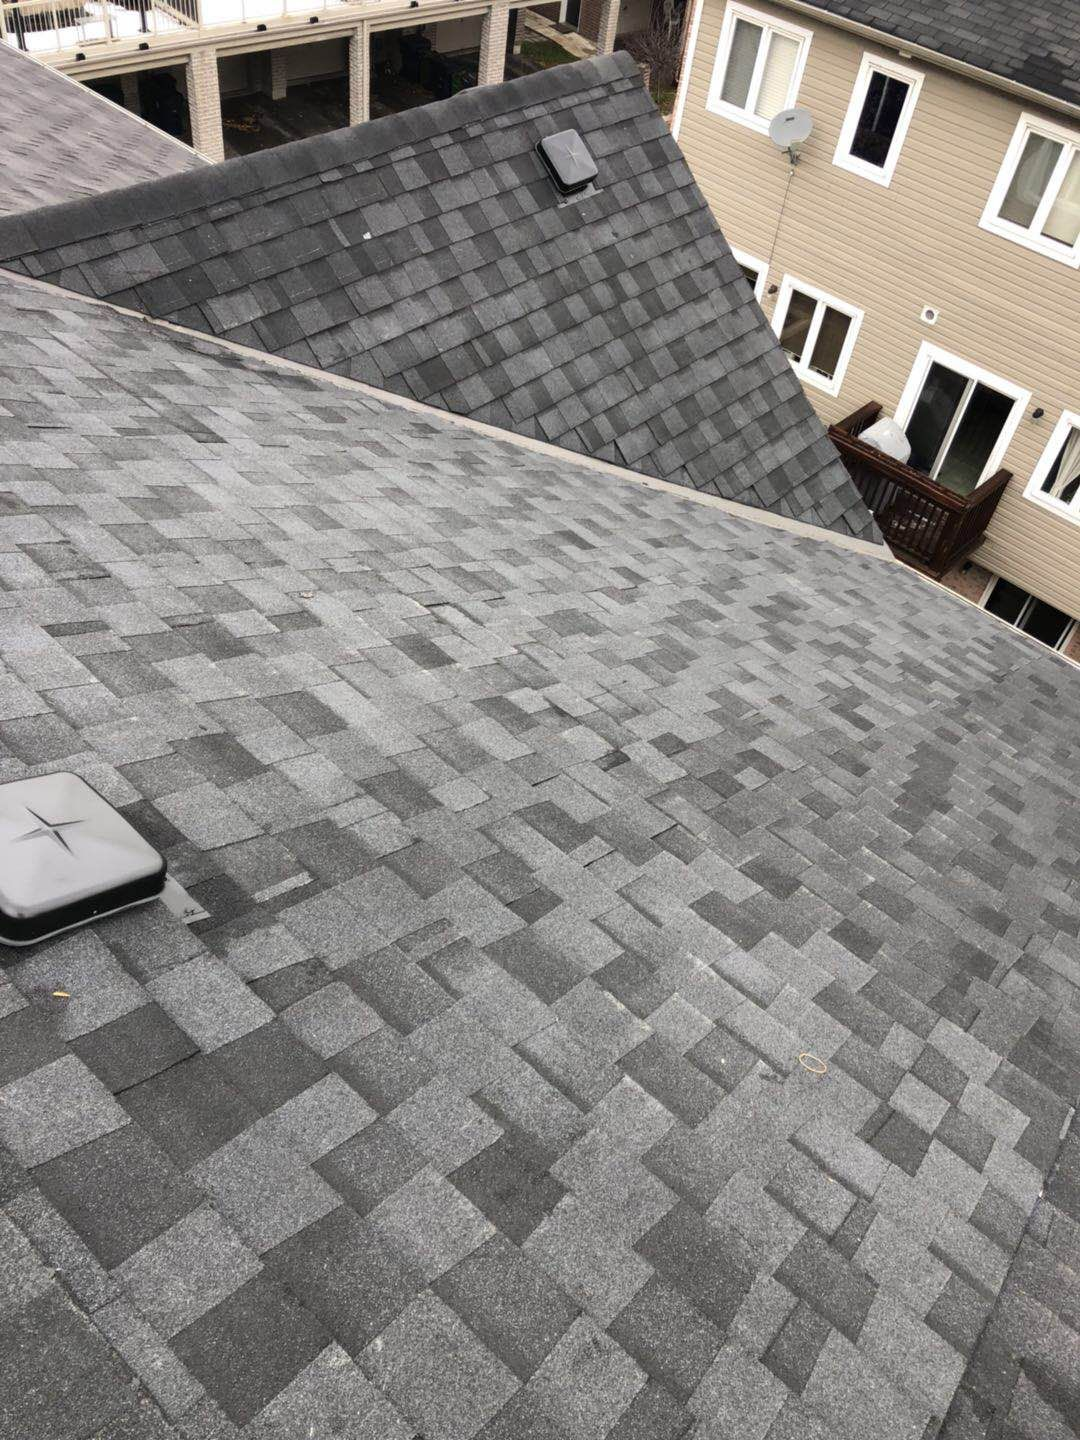 Residential Roofing Project In Markham 3 Toronto Roofing Company Roof Repair Amp Replacement